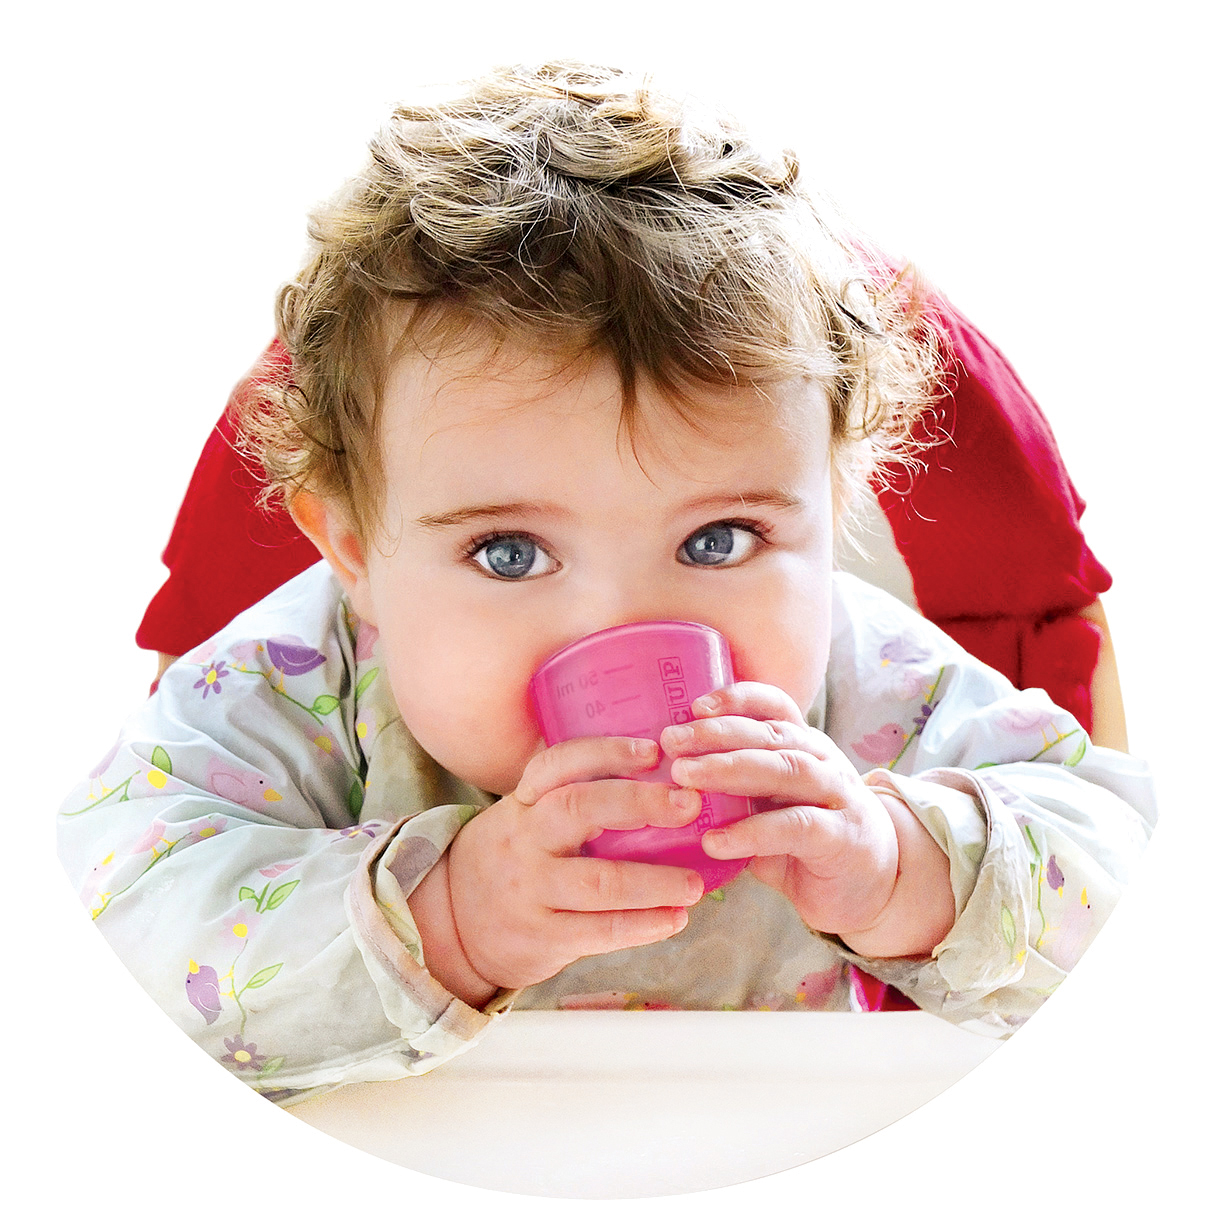 babycup_baby_and_toddler_first_cups_best_weaning_cups_lifestyle_srgb_www-picandmiximages-co-uk